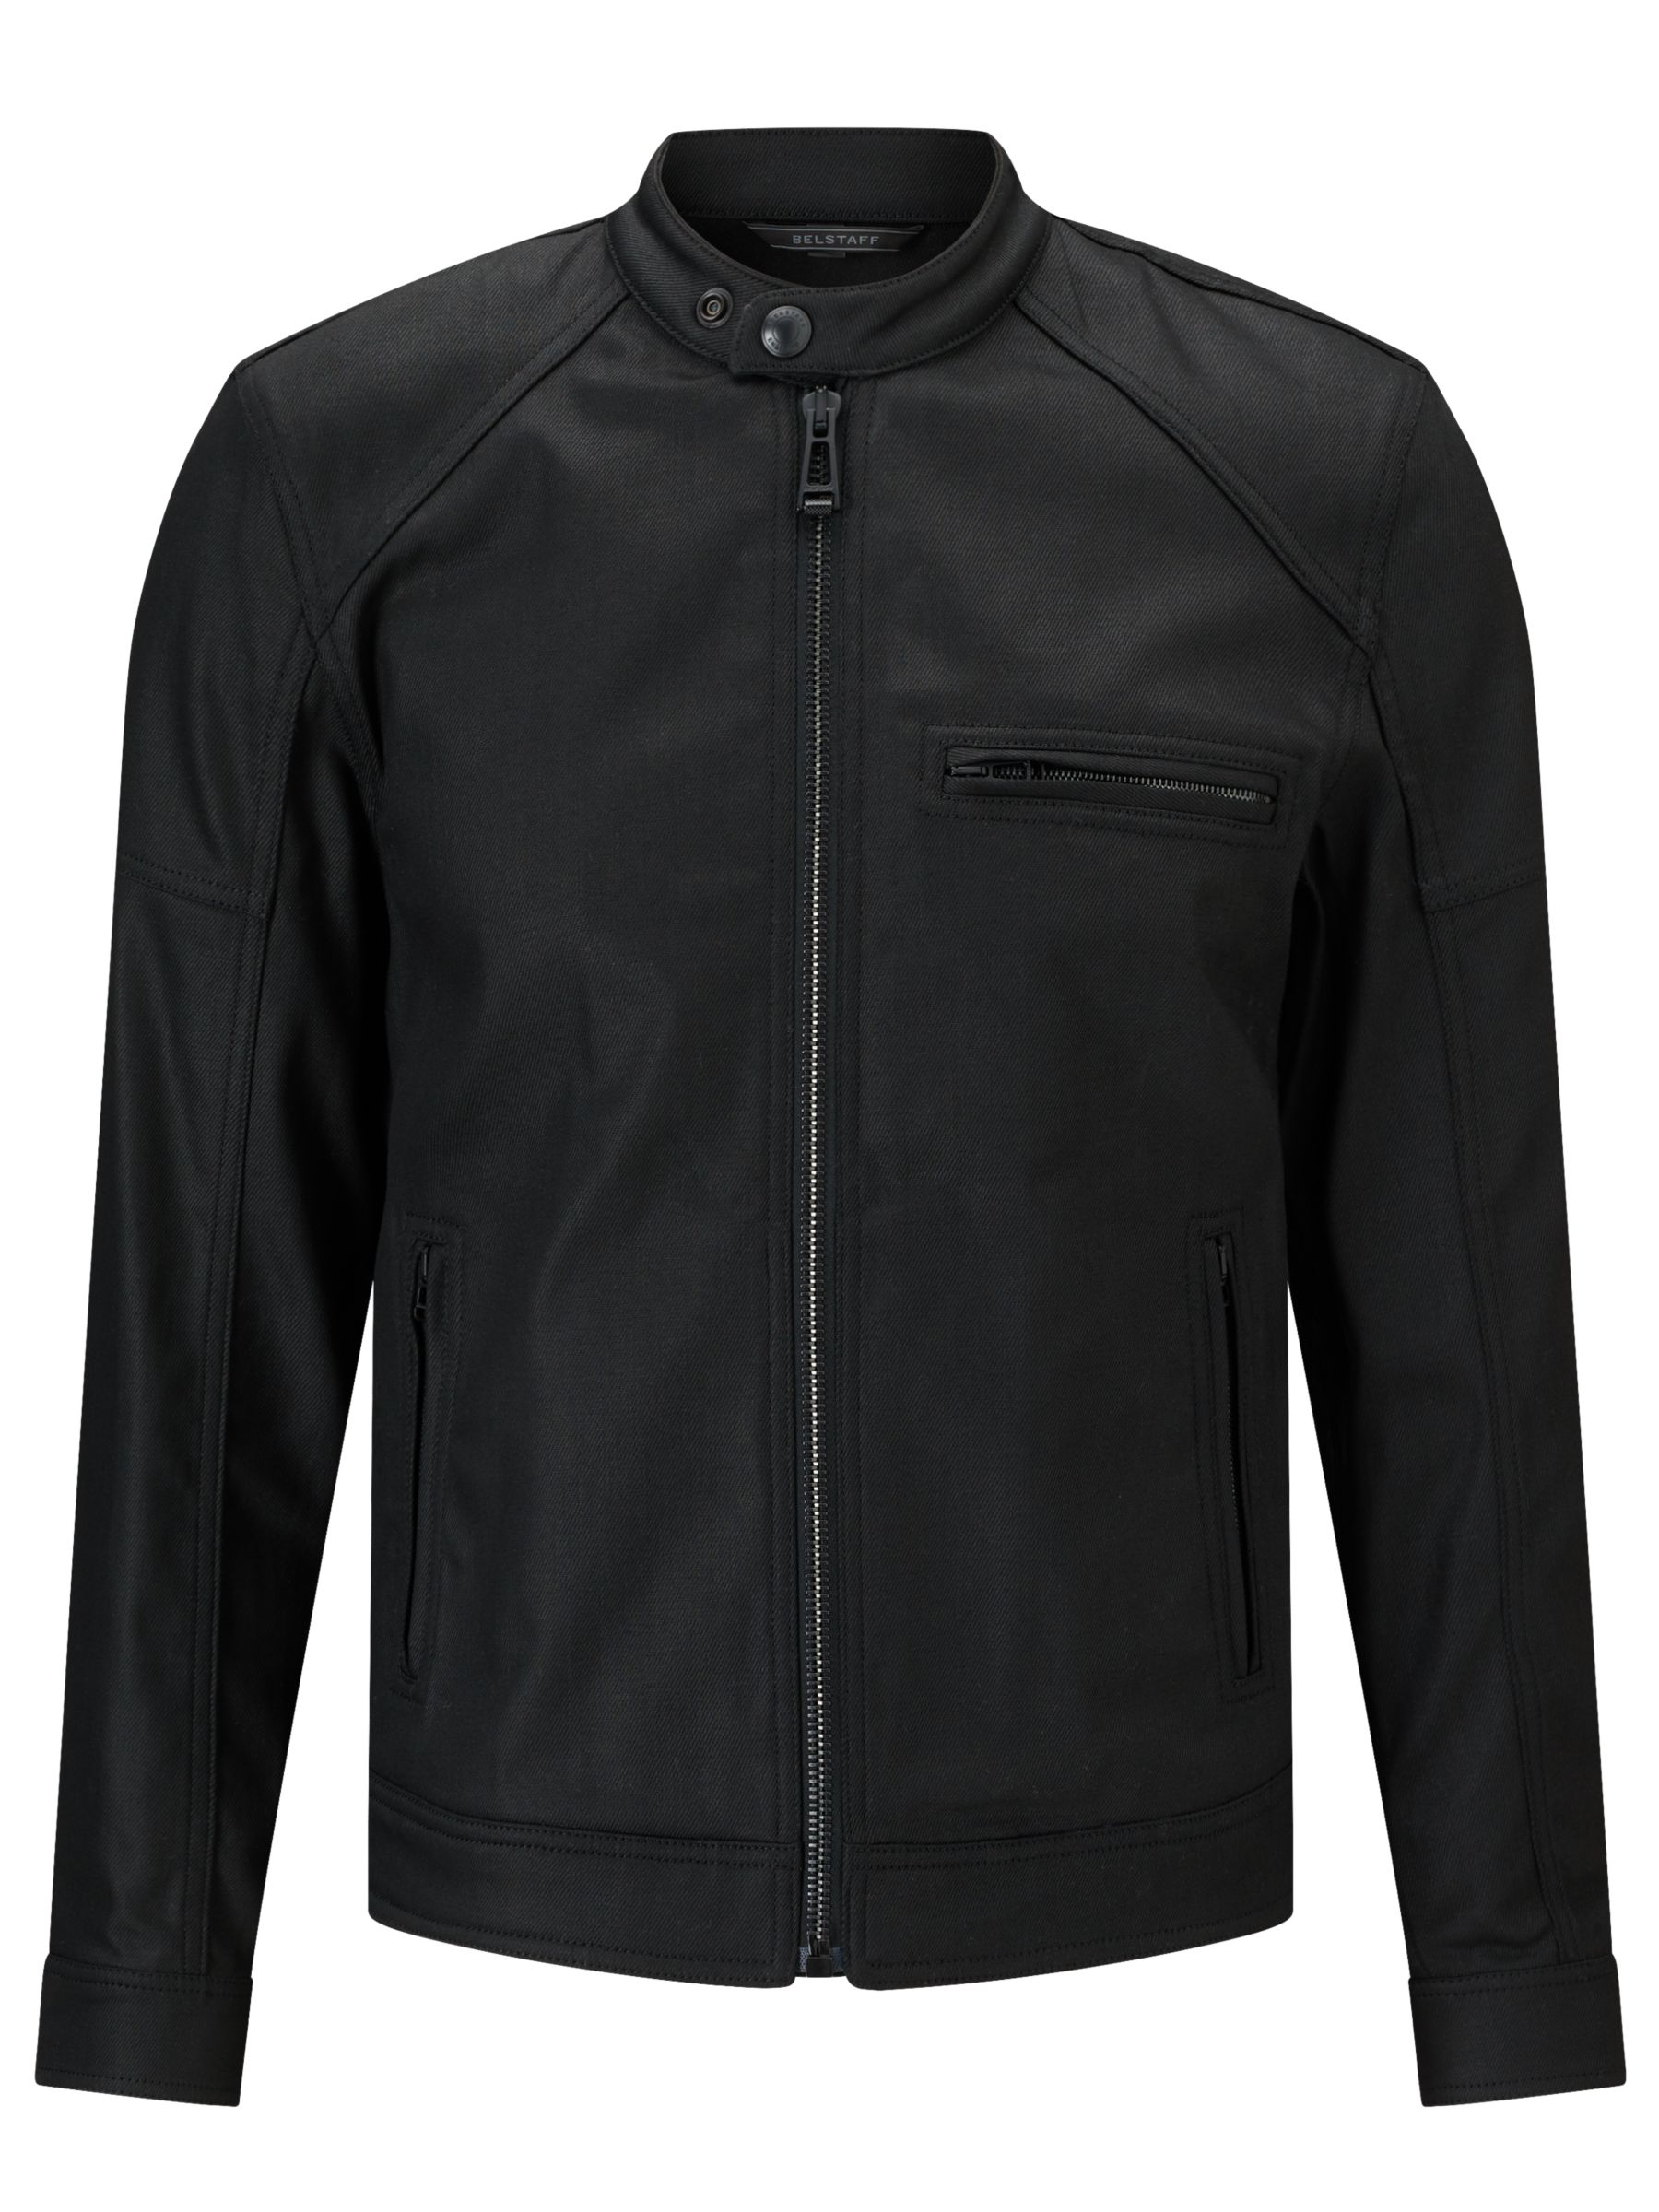 Belstaff Belstaff Beckford Cotton Twill Waxed Jacket, Black